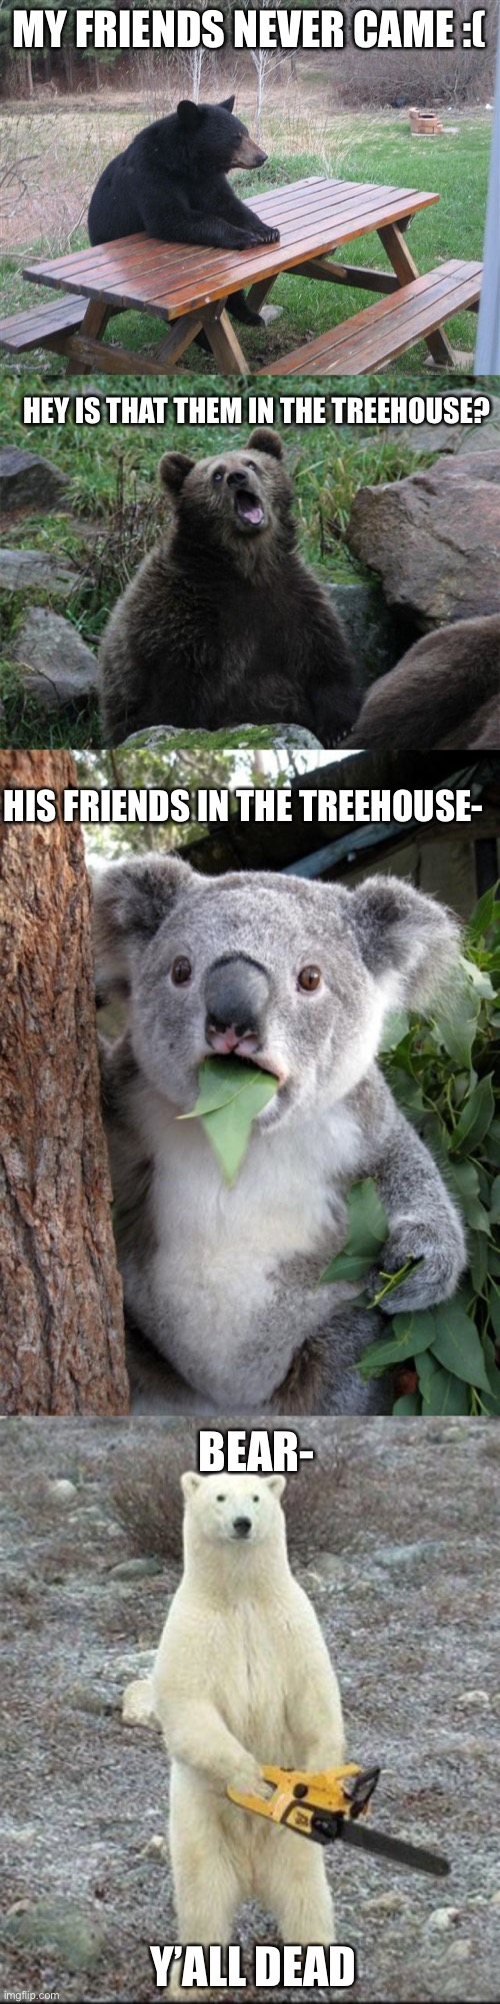 MY FRIENDS NEVER CAME :(; HEY IS THAT THEM IN THE TREEHOUSE? HIS FRIENDS IN THE TREEHOUSE-; BEAR-; Y'ALL DEAD | image tagged in memes,surprised koala,chainsaw bear,sarcastic bear,patient bear | made w/ Imgflip meme maker